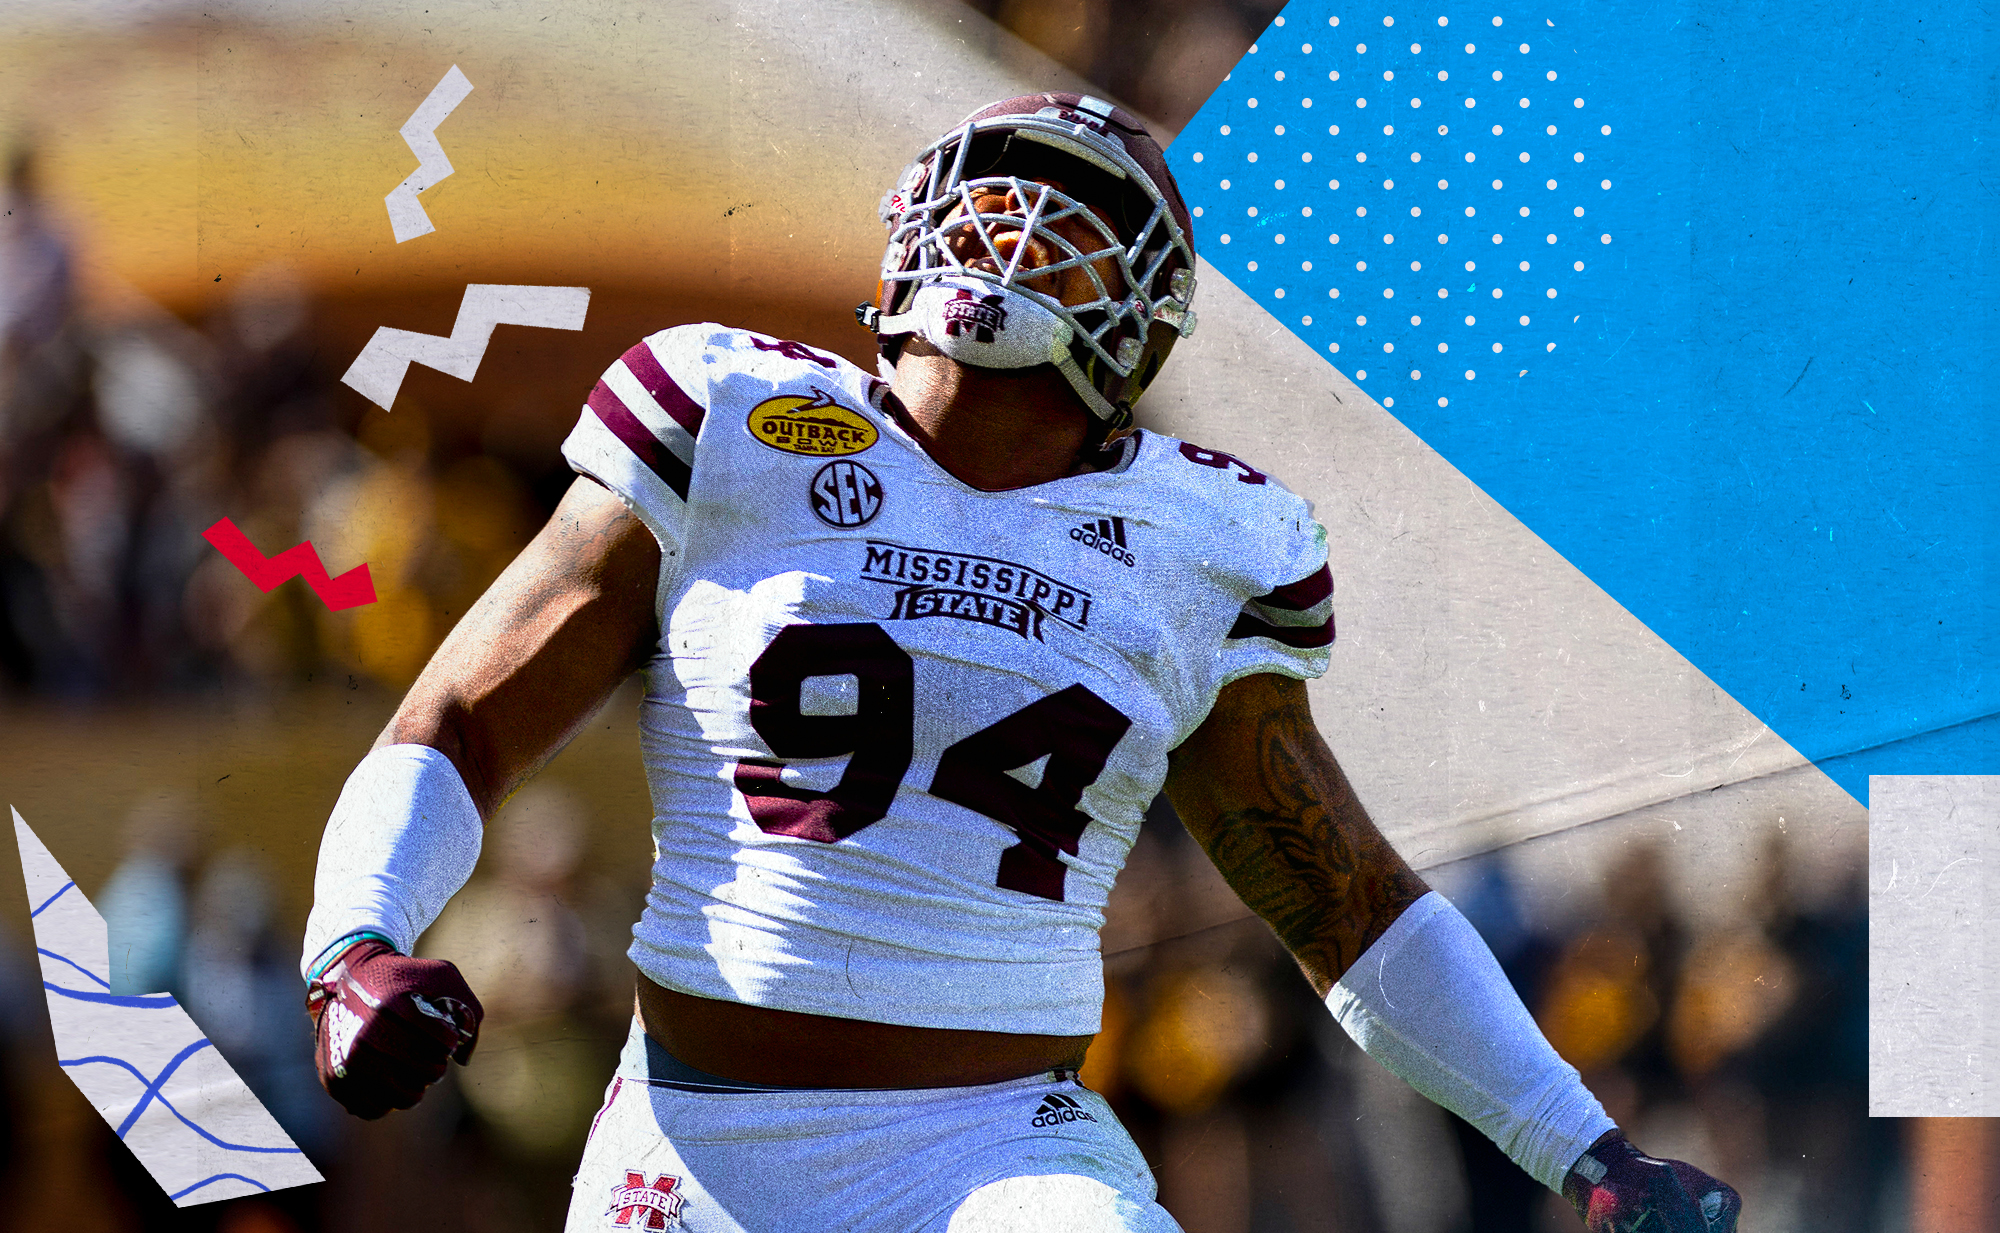 Jeffery Simmons is the 2019 NFL Draft's ultimate high-risk, high-reward player